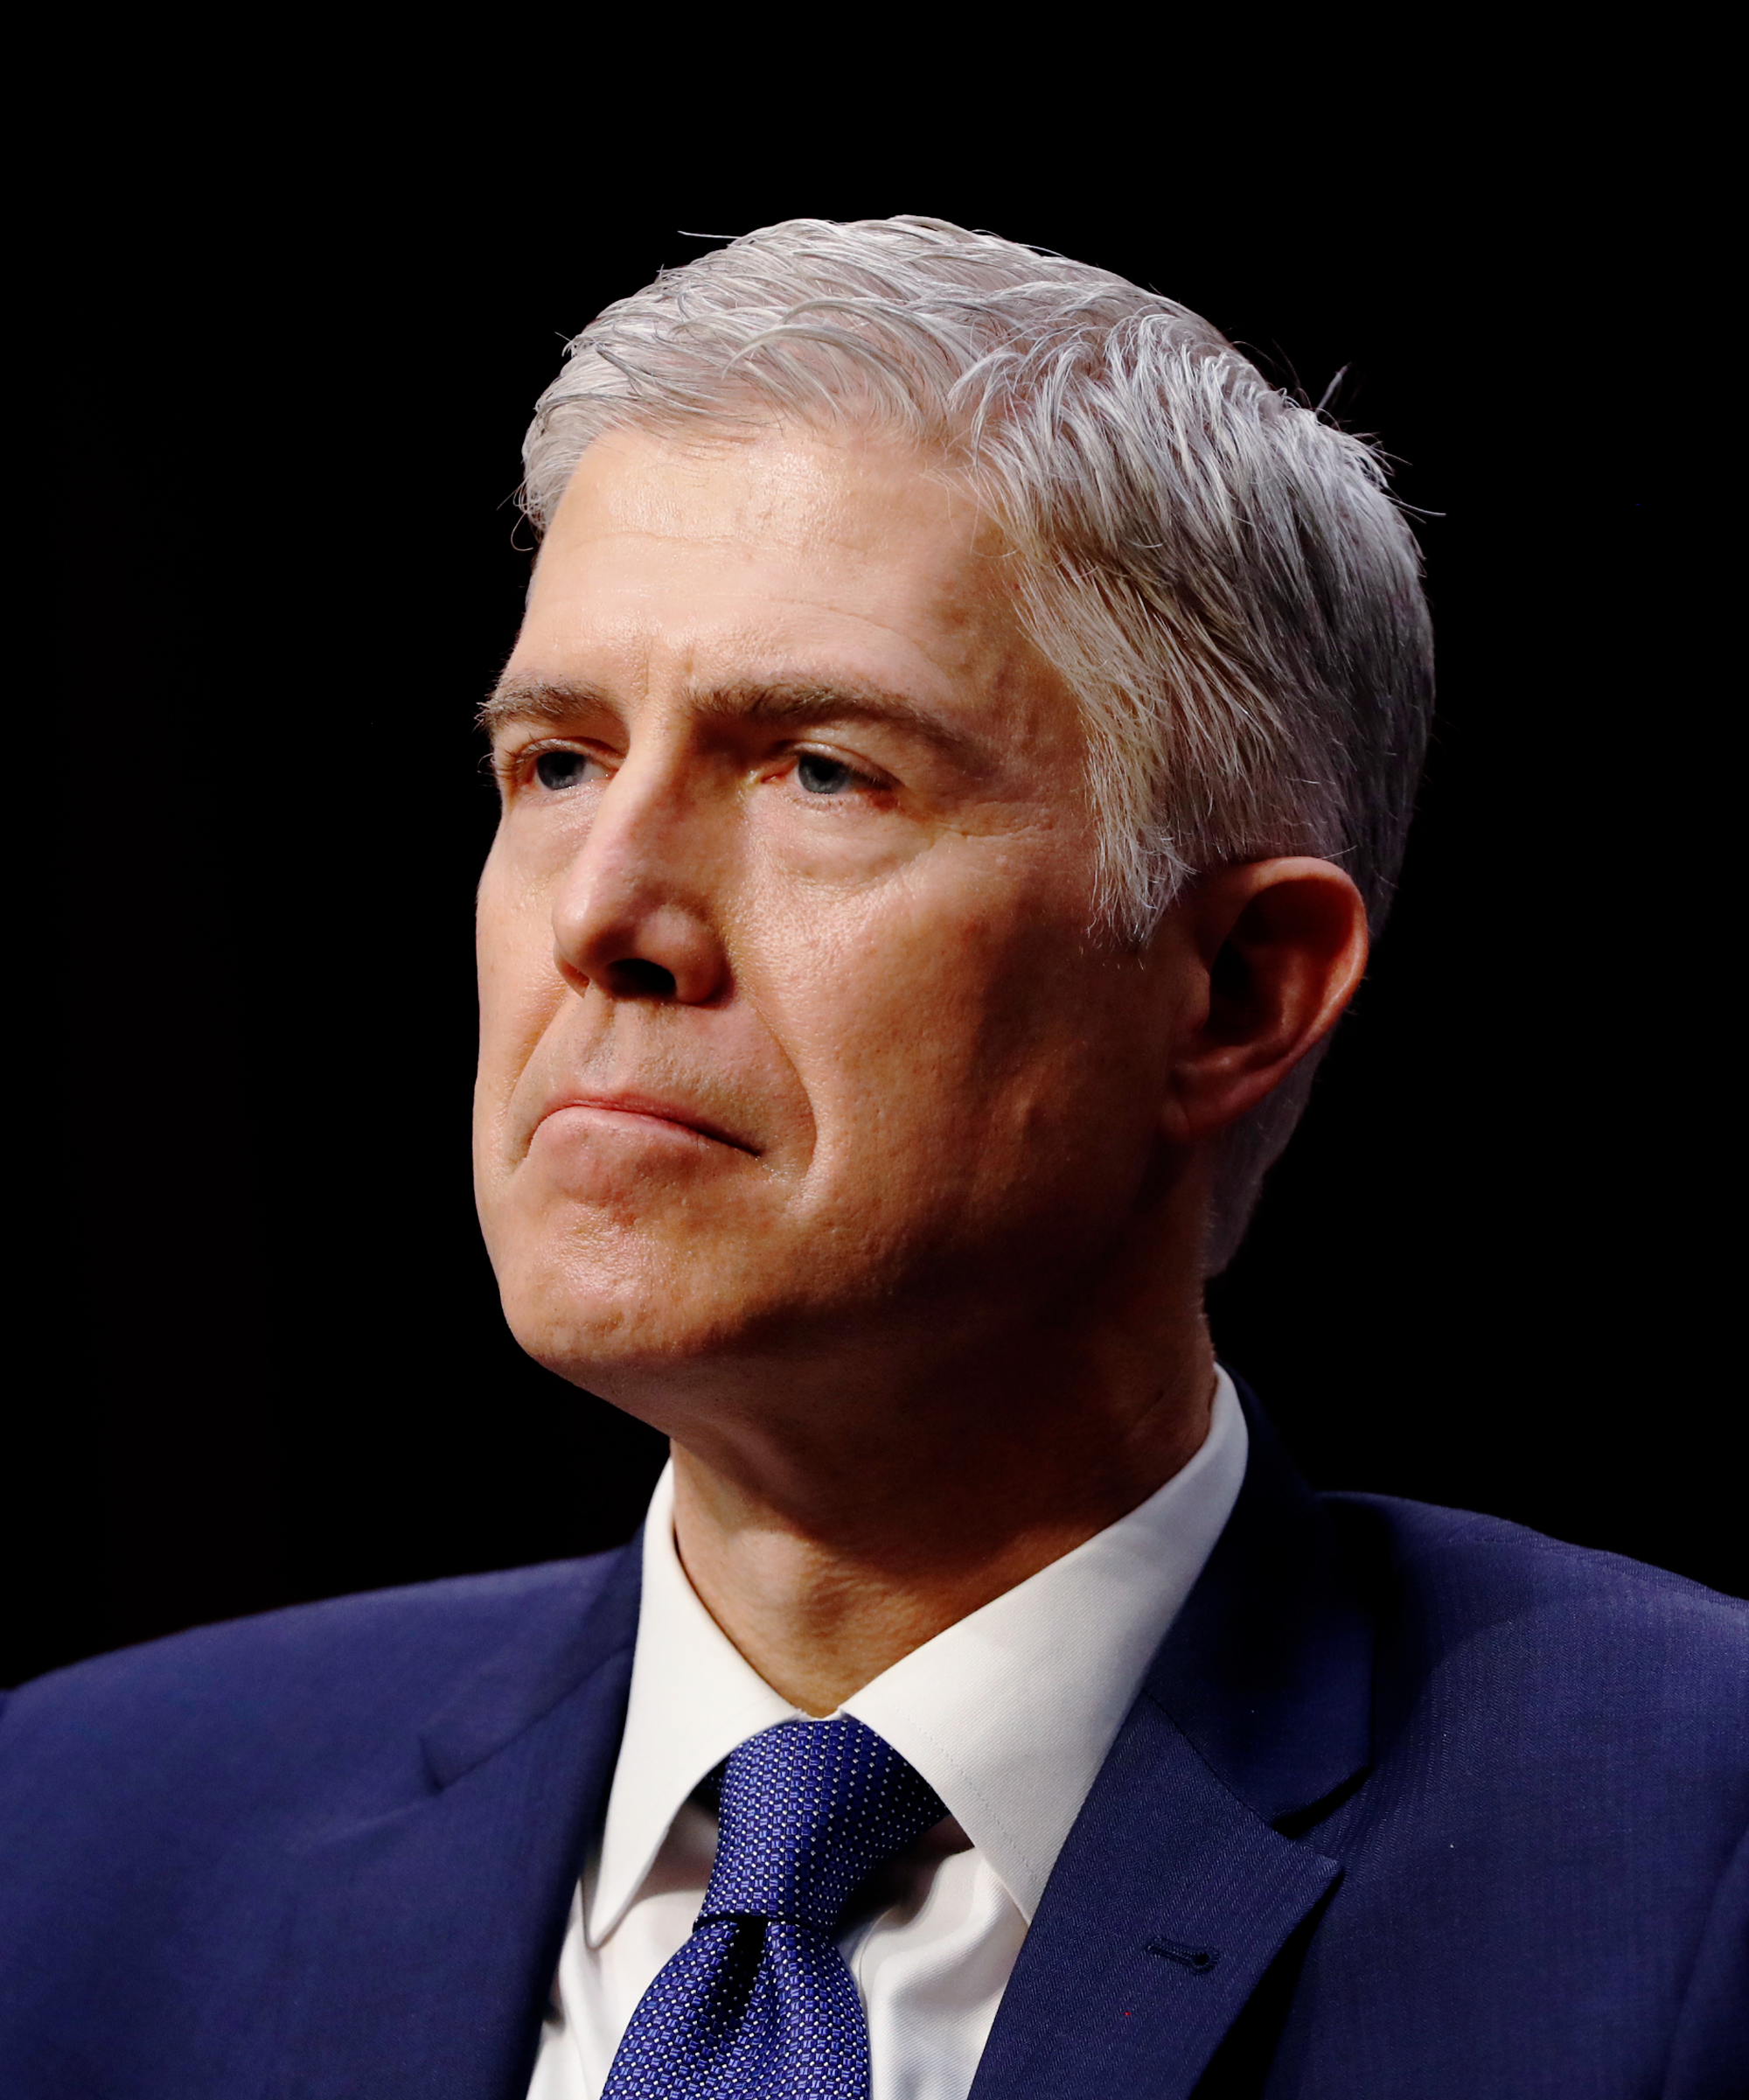 Neil Gorsuch received final confirmation to Supreme Court Friday morning